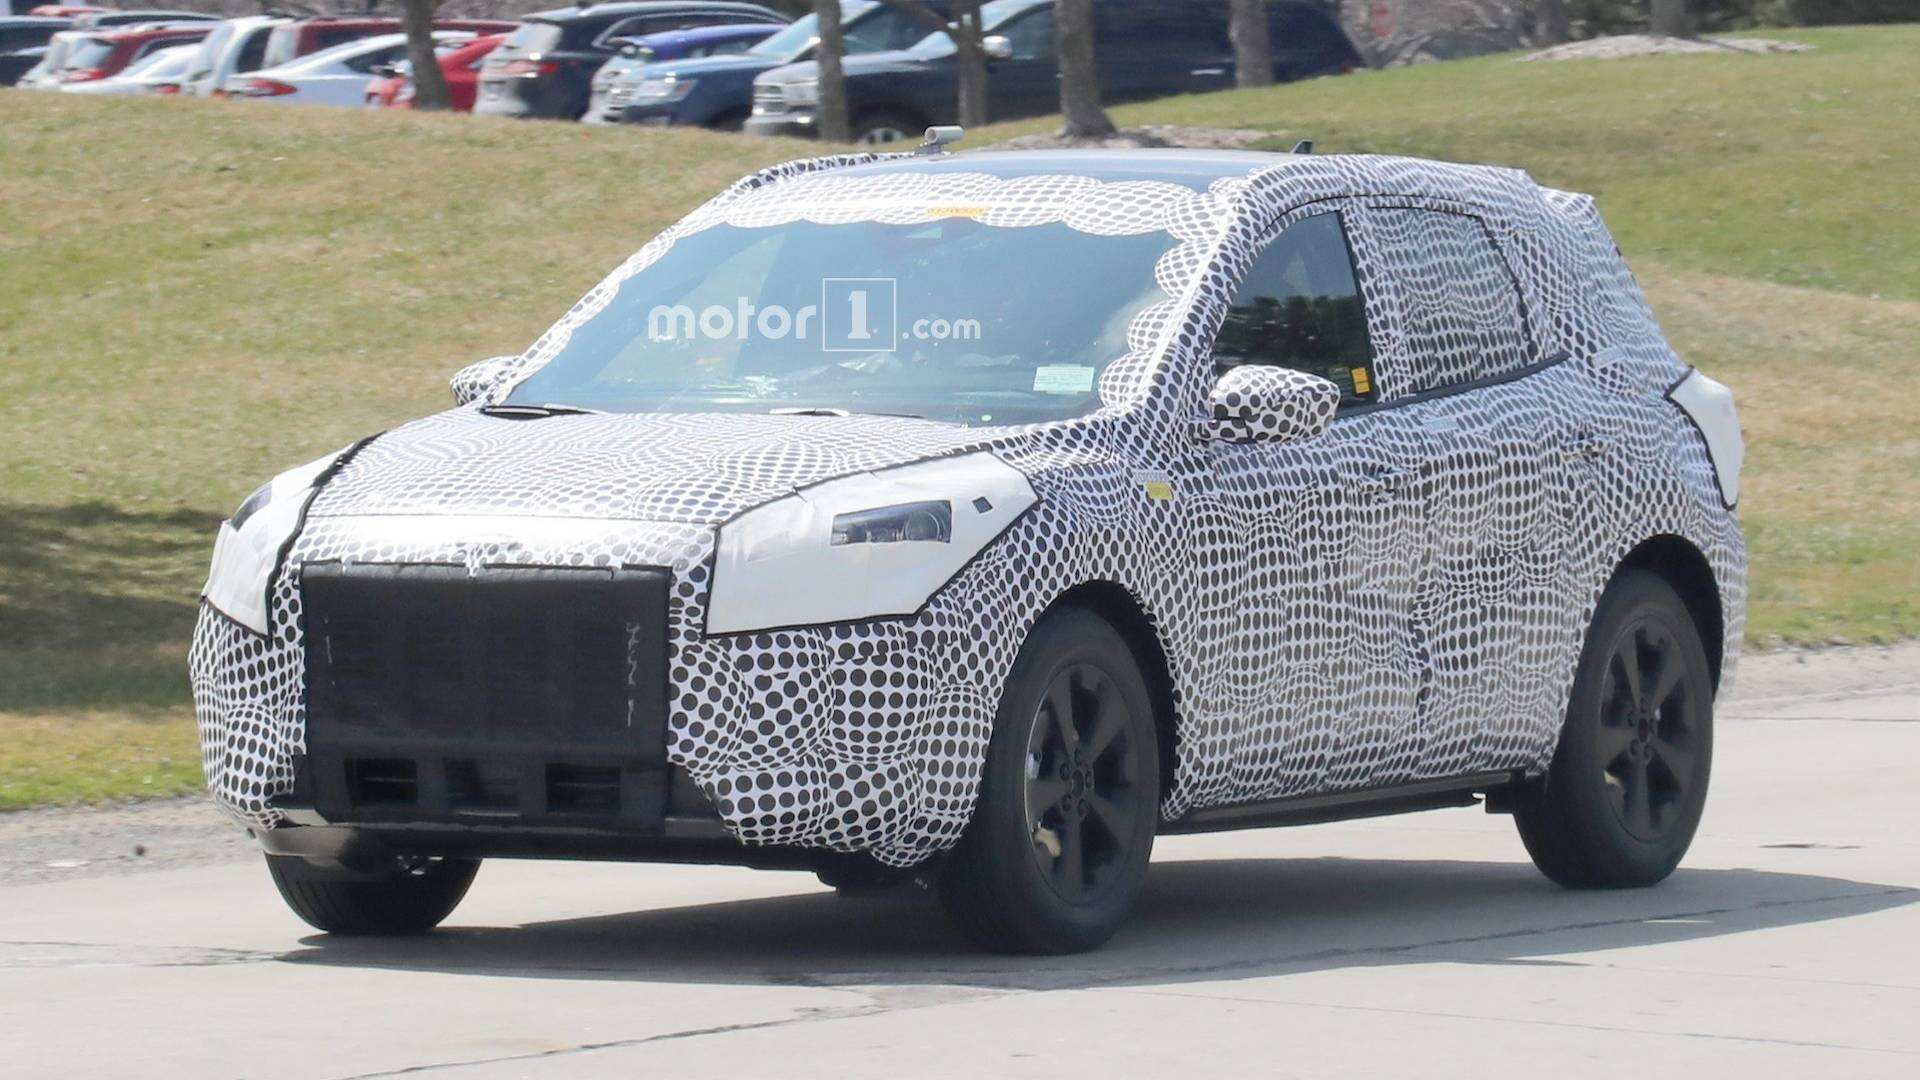 79 The Best Ford Kuga 2020 Spy Shots Review And Release Date